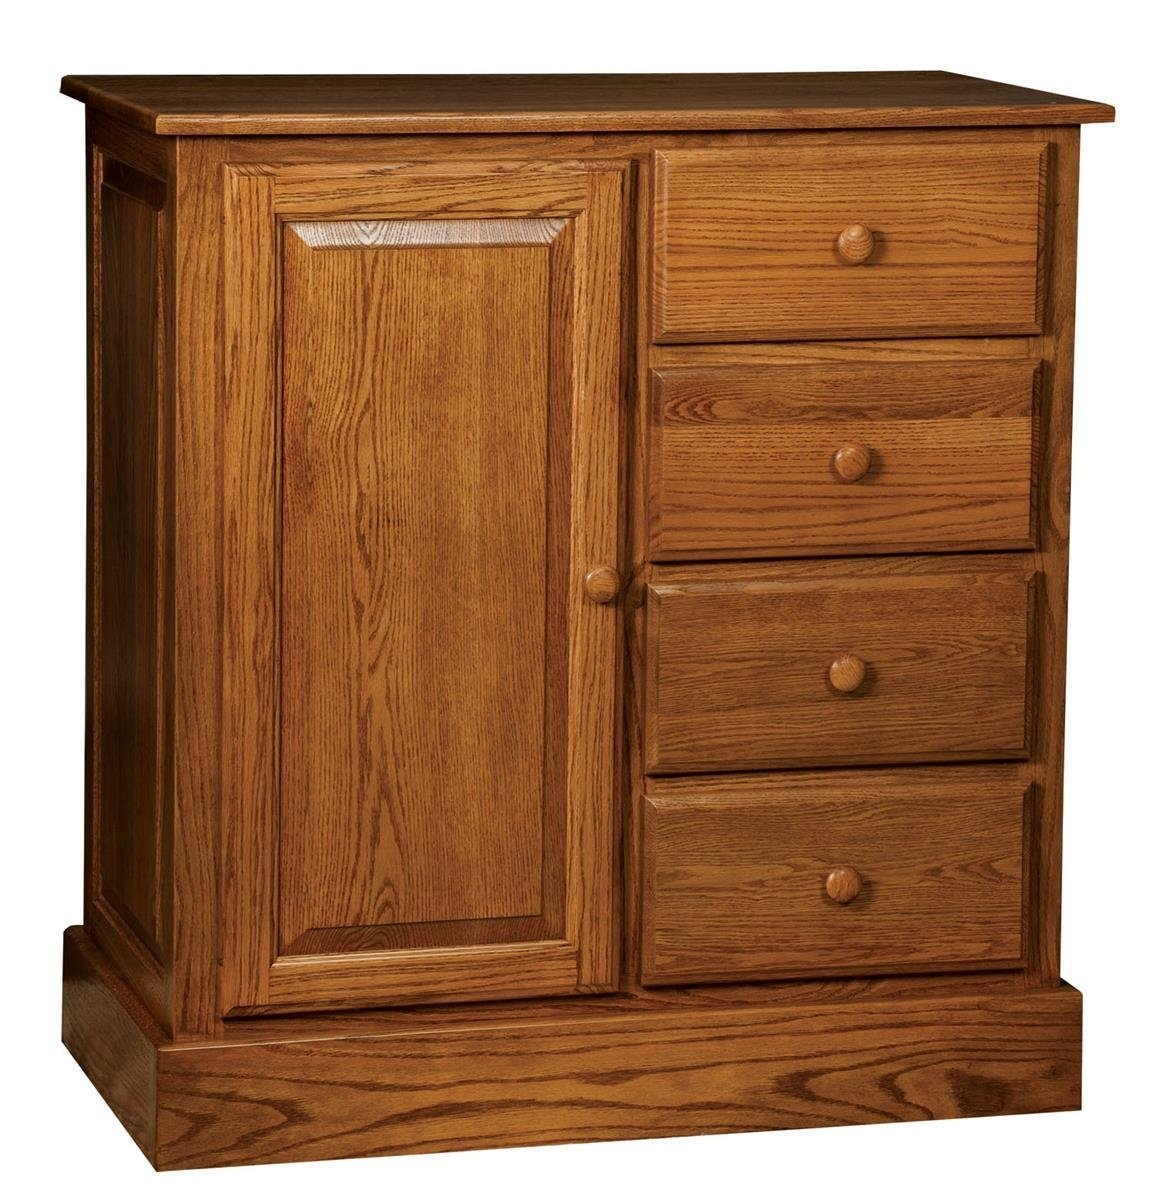 Amish Kid's Wardrobe, solid wood